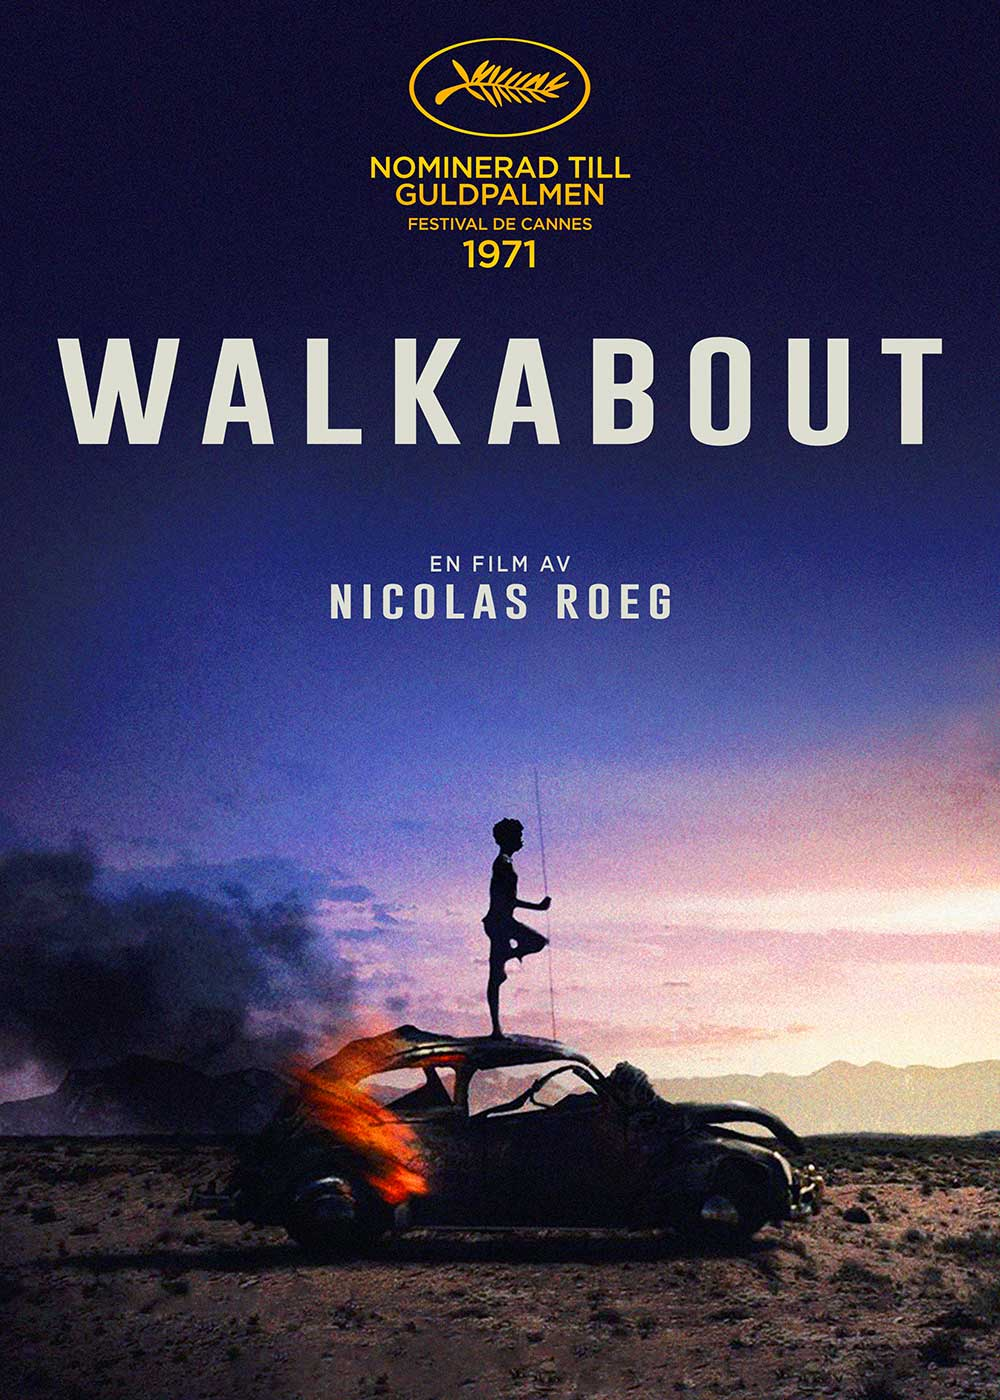 Walkabout-poster.jpg